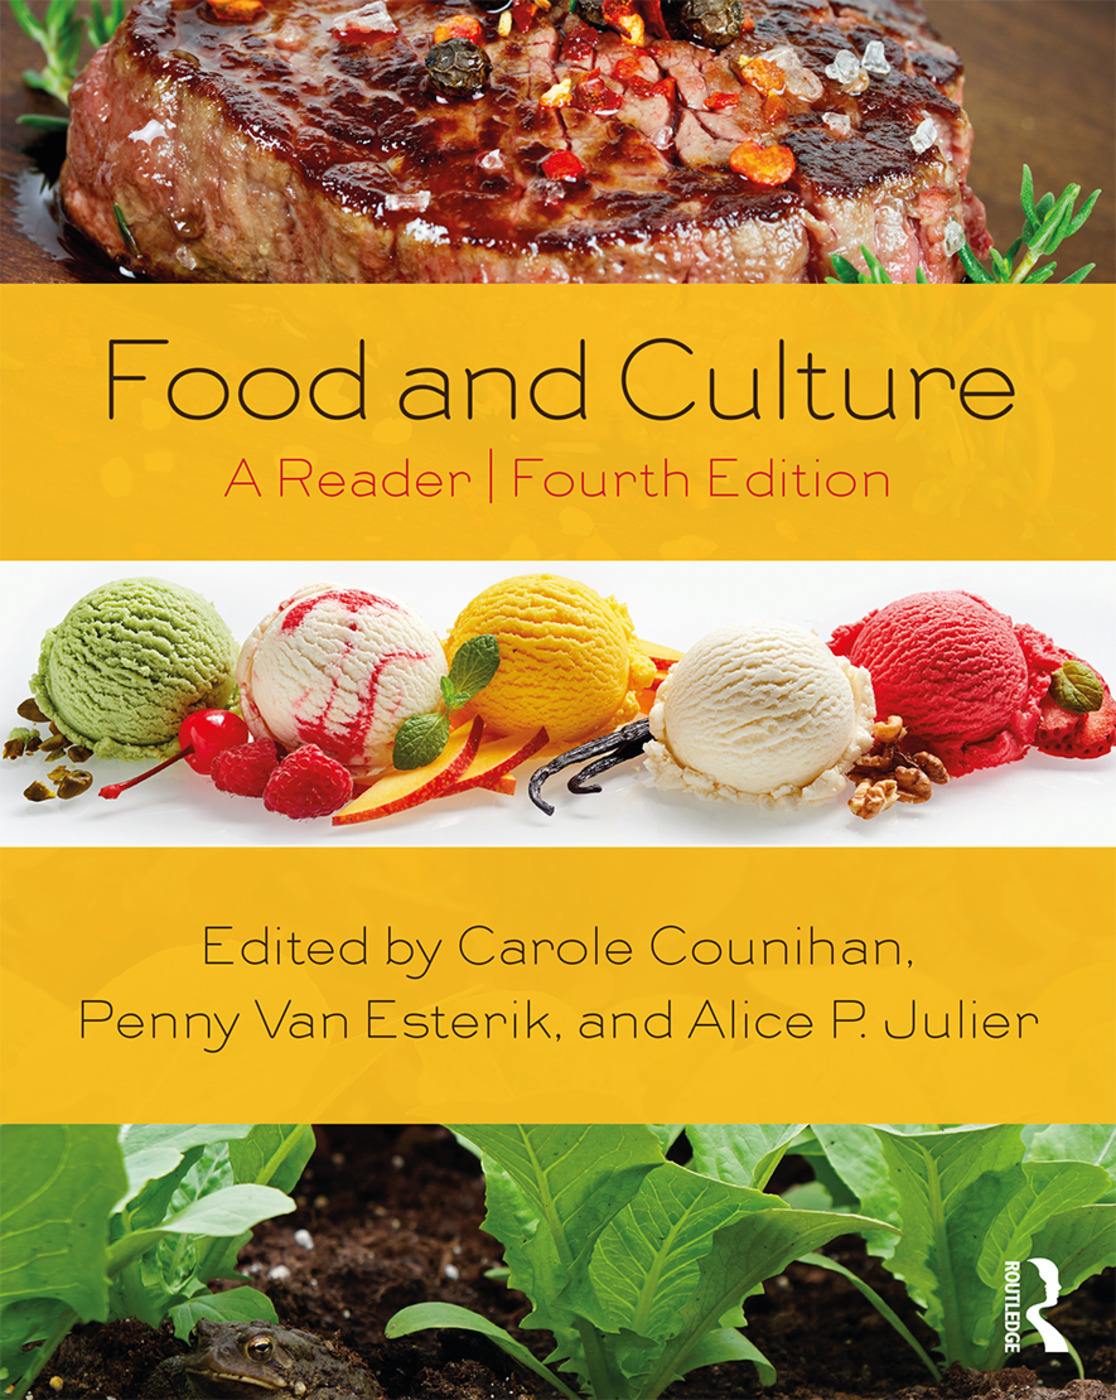 Food and Culture. A Reader